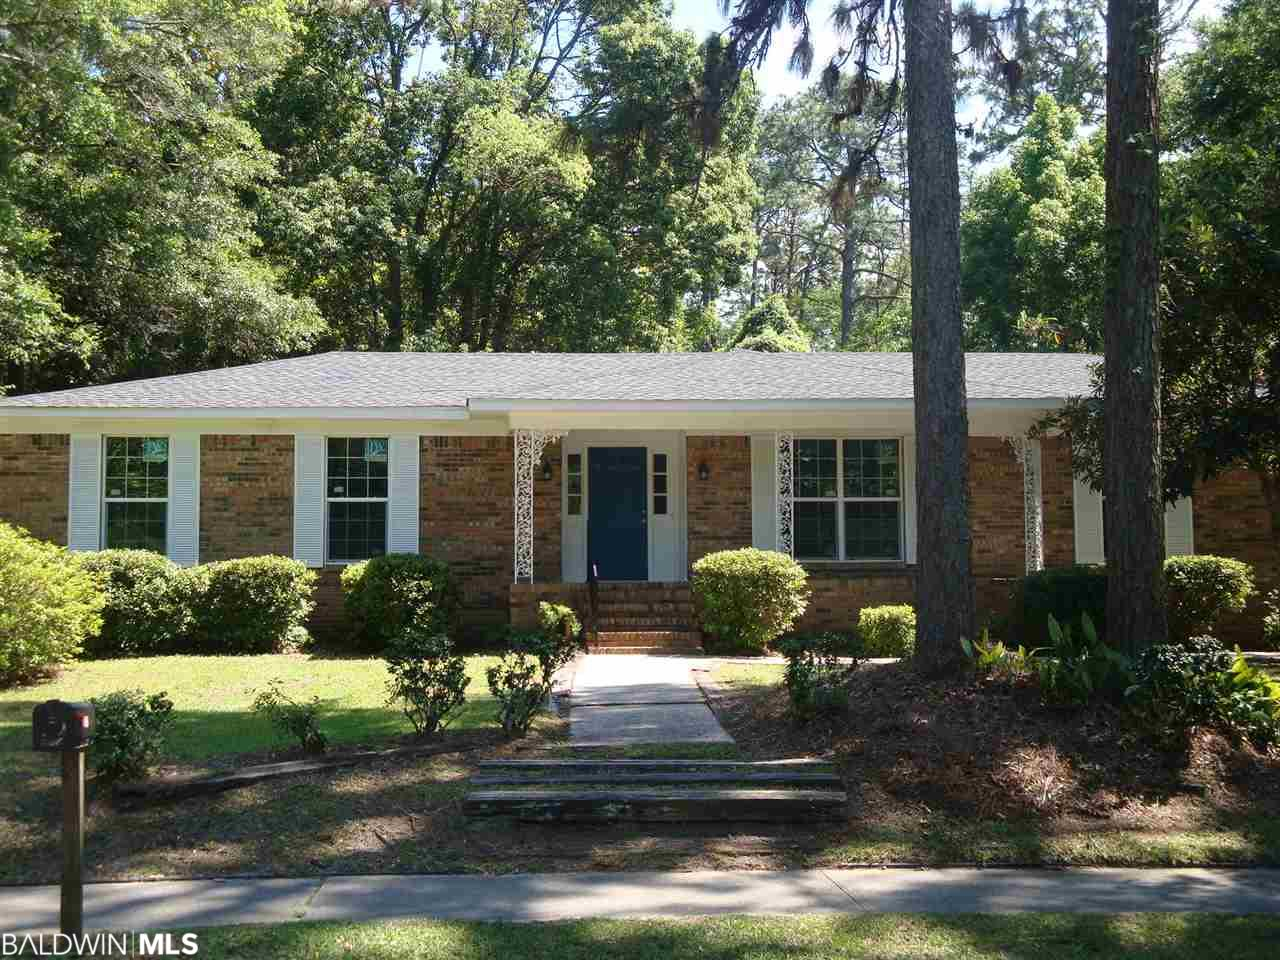 Completely renovated, spacious brick home in the heart of Fairhope. High quality waterproof laminate throughout the entire house. Freshly painted. Updated bathrooms and kitchen. Eight walk-in closets. New hurricane proof windows throughout the house. Faces Gayfer Ave with driveway on Blue Island. Two door enclosed and attached garage. Front porch; large patio in fenced-in backyard. New Timberline roof put on in 2018.  LISTING BROKER MAKES NO REPRESENTATION TO SQUARE FOOTAGE ACCURACY. BUYER TO VERIFY.